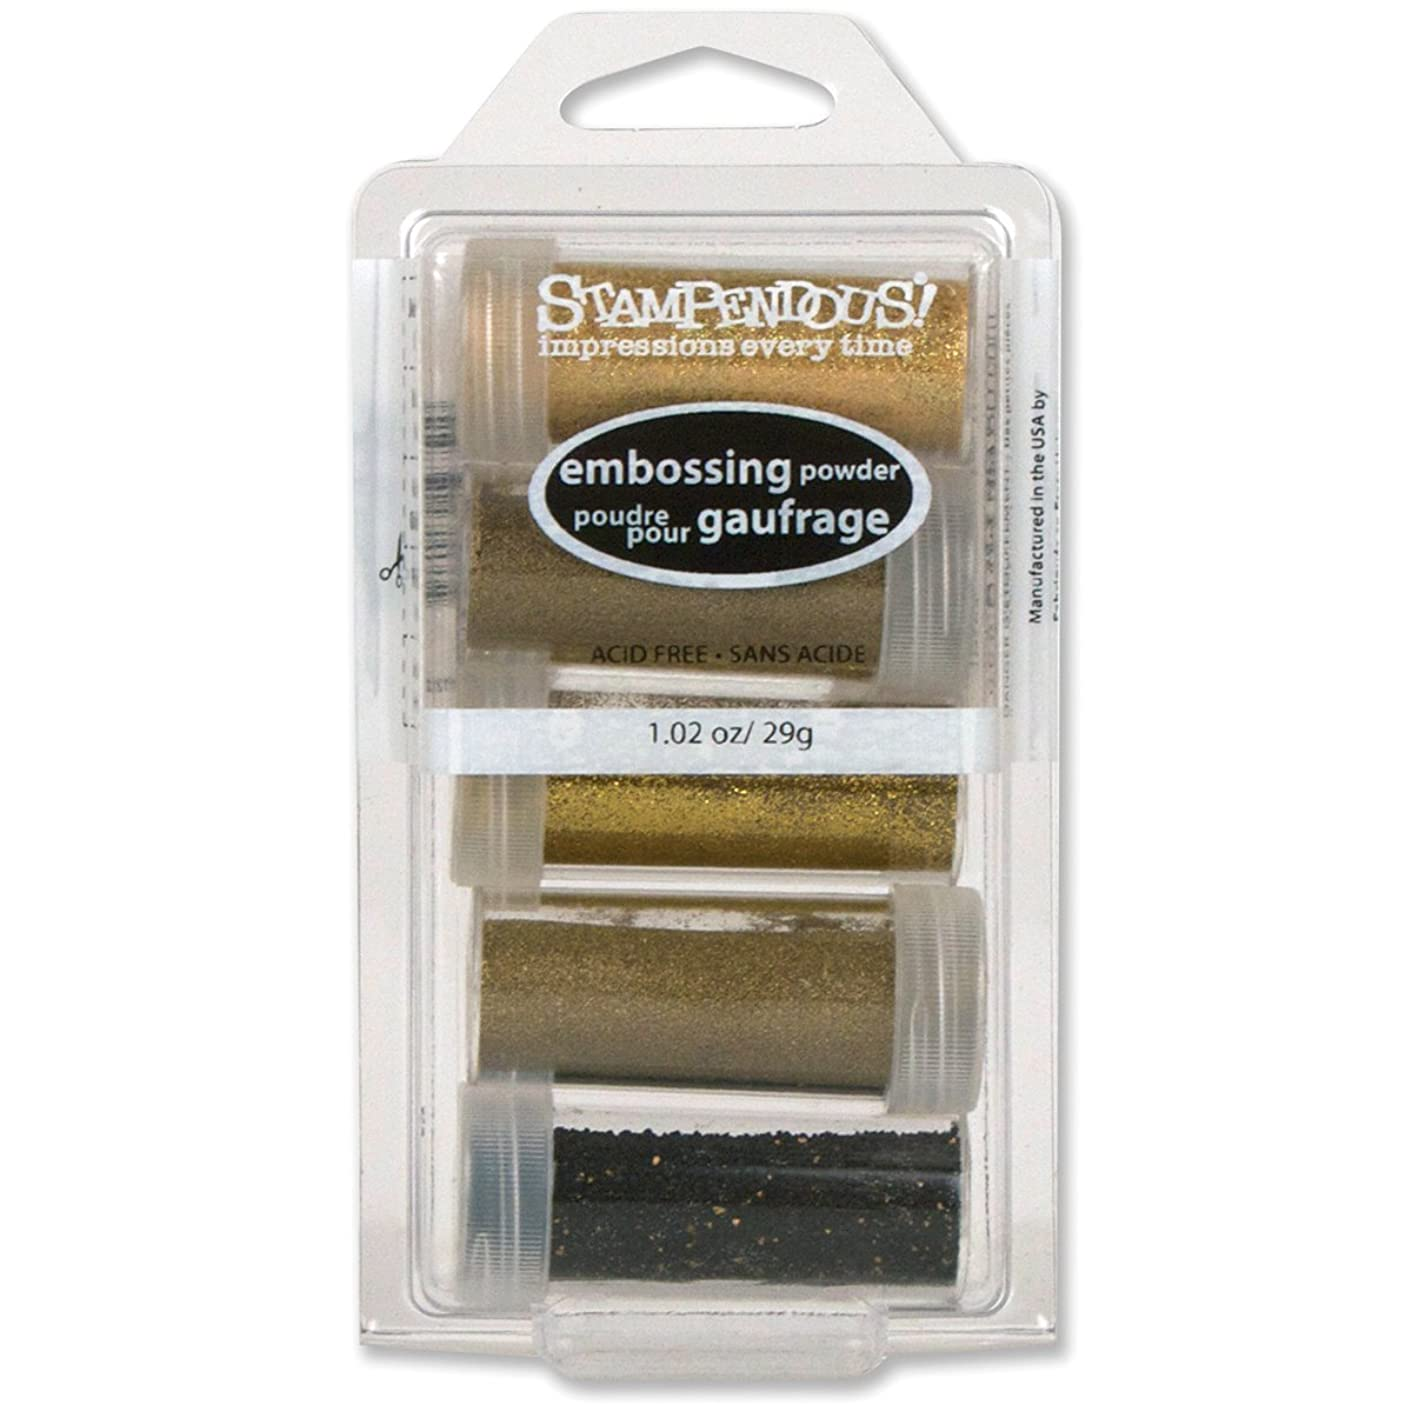 Stampendous Embossing Powder Kit, Glamour, 5-Pack